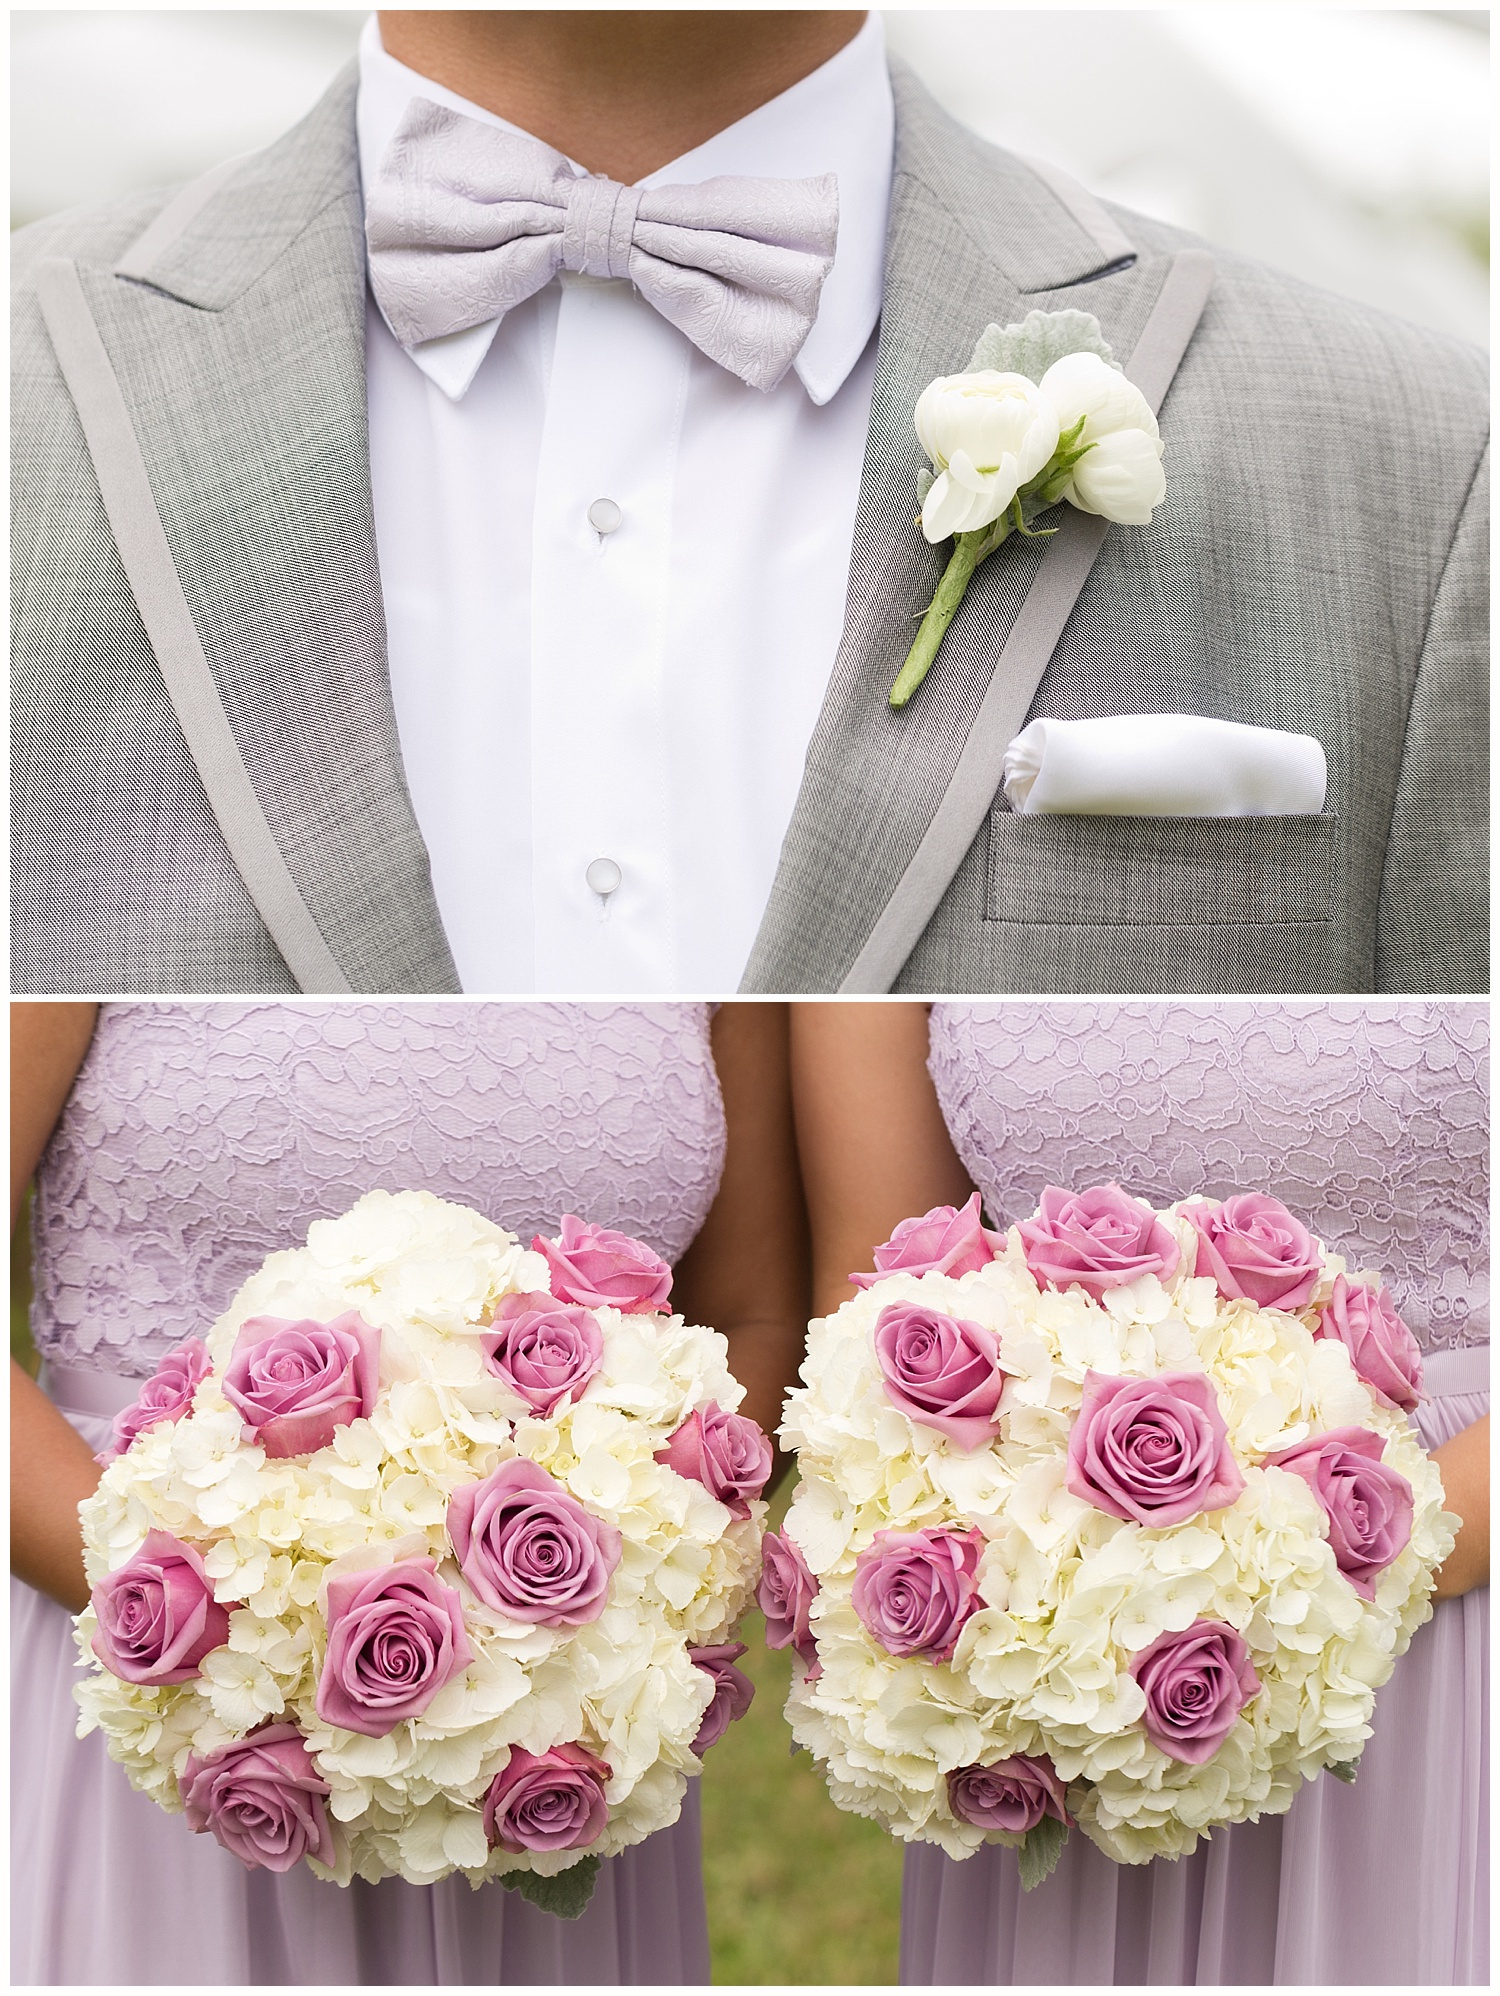 pink, white, gray wedding bouquets and boutonniere (wedding detail photos by New Orleans wedding photographer Uninvented Colors Photography)